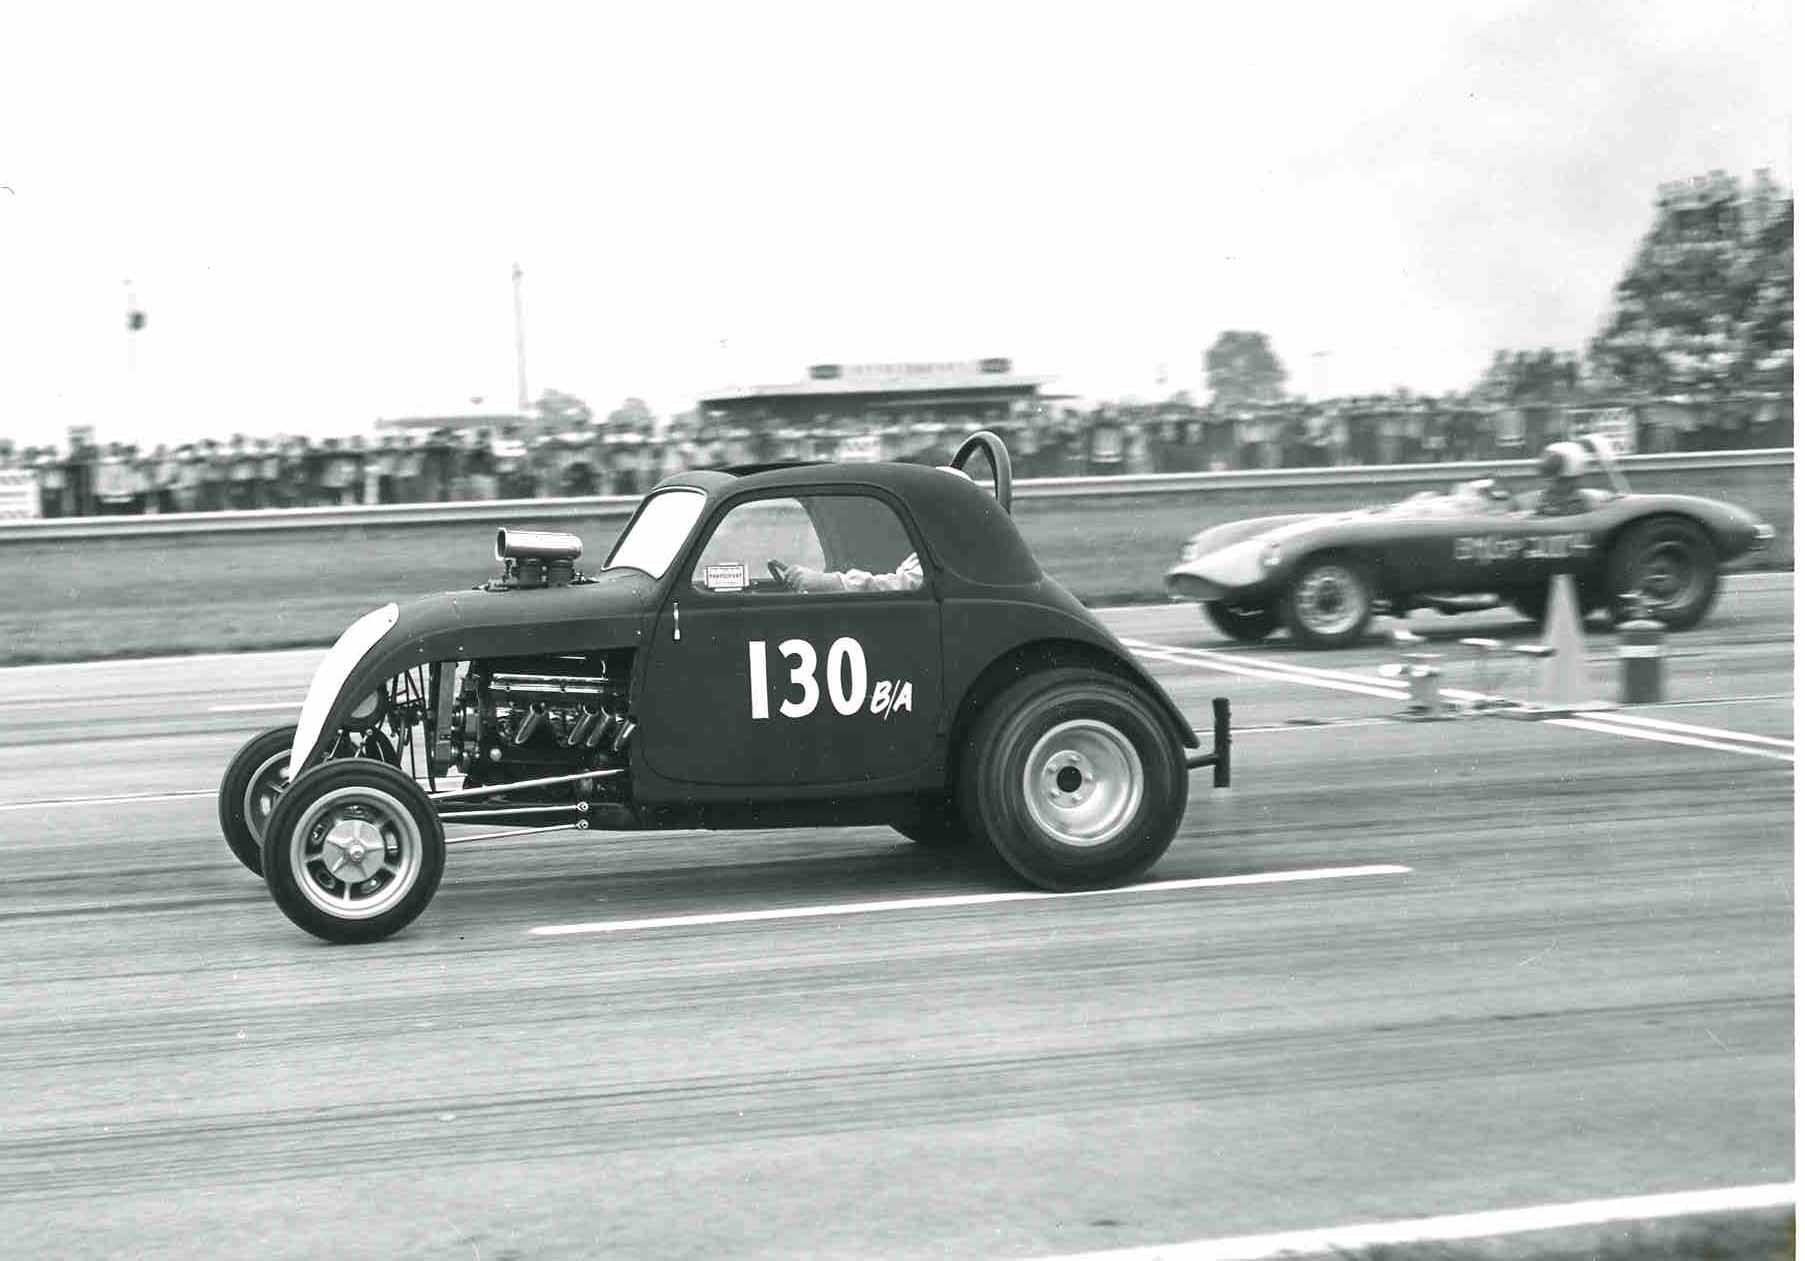 Built by Shreve Automotive, Shreveport, LA, the Topolino in this configuration, which included a Ronnie Scrima chassis powered by a supercharged Olds with B&M Hydrostick, first raced at Indy 1962, where it broke an axle in the semis finals. Famed camshaft manufacturer Joe Lunati is pictured in his sports car in the far lane.